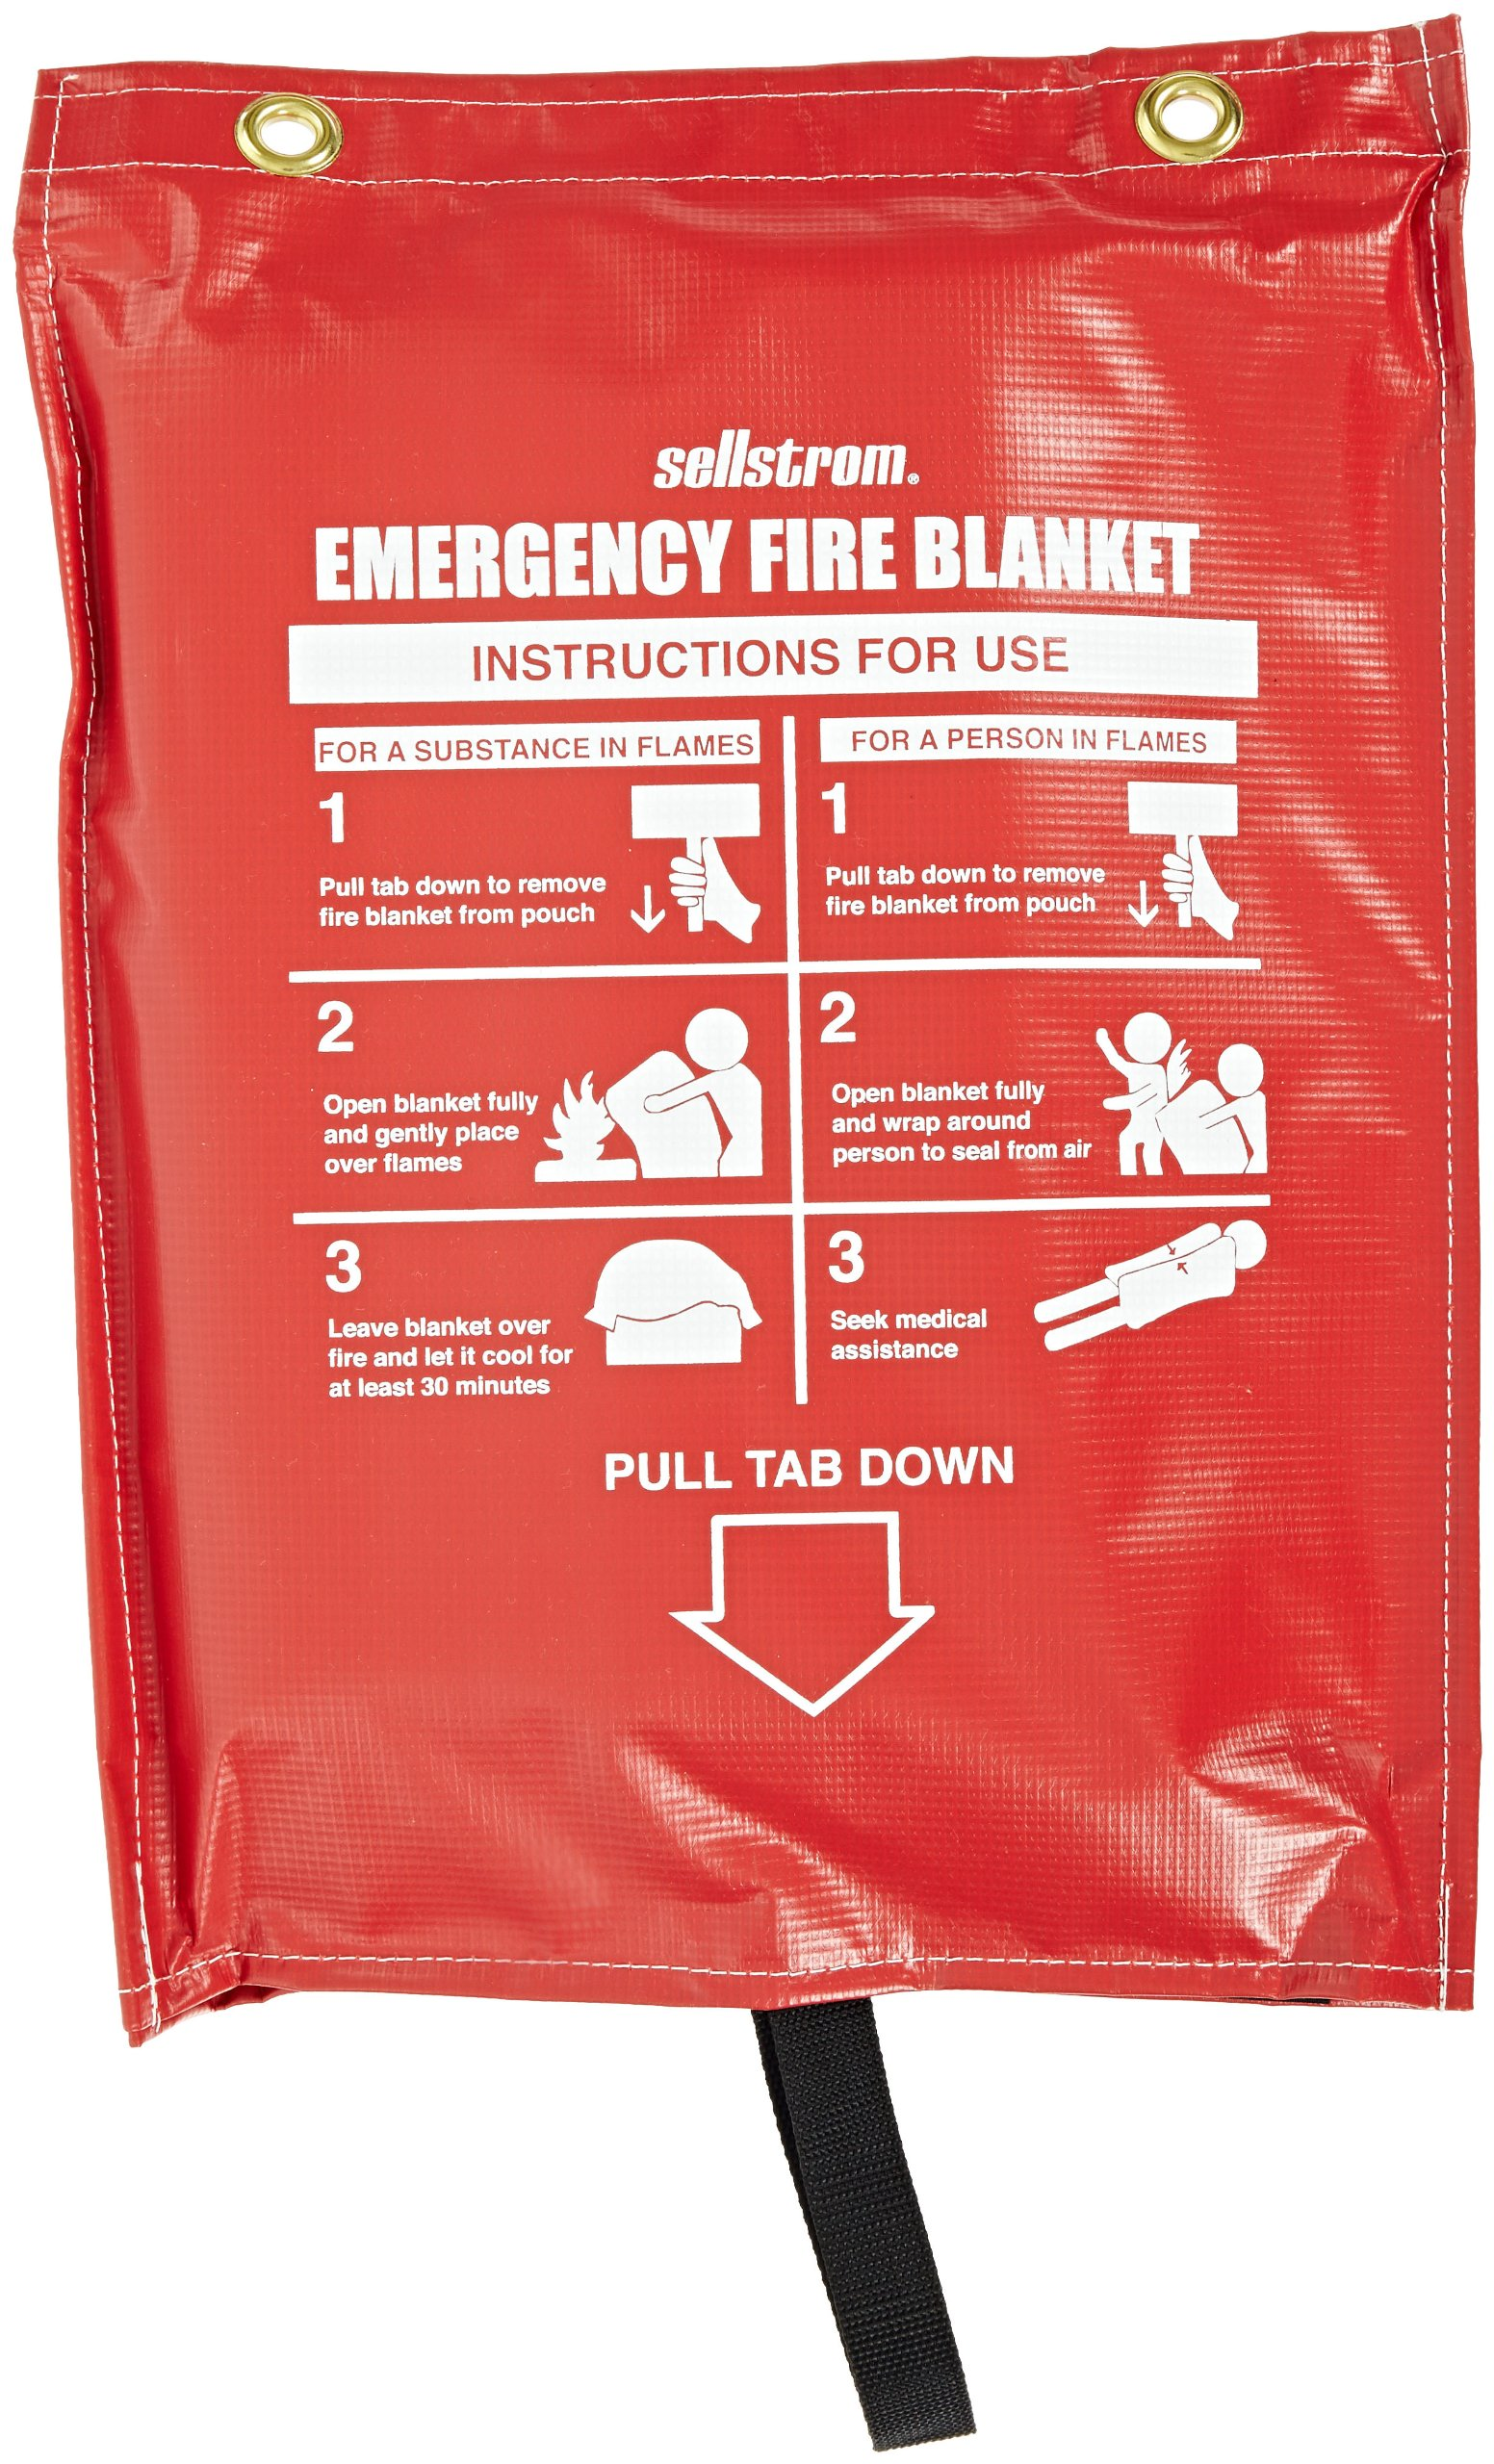 Sellstrom S97450 Fiberglass, Emergency High Temperature Fire Blanket (1,000 Deg F) with Red Vinyl Hanging Pouch, 6' Length x 5' Width, White by Sellstrom